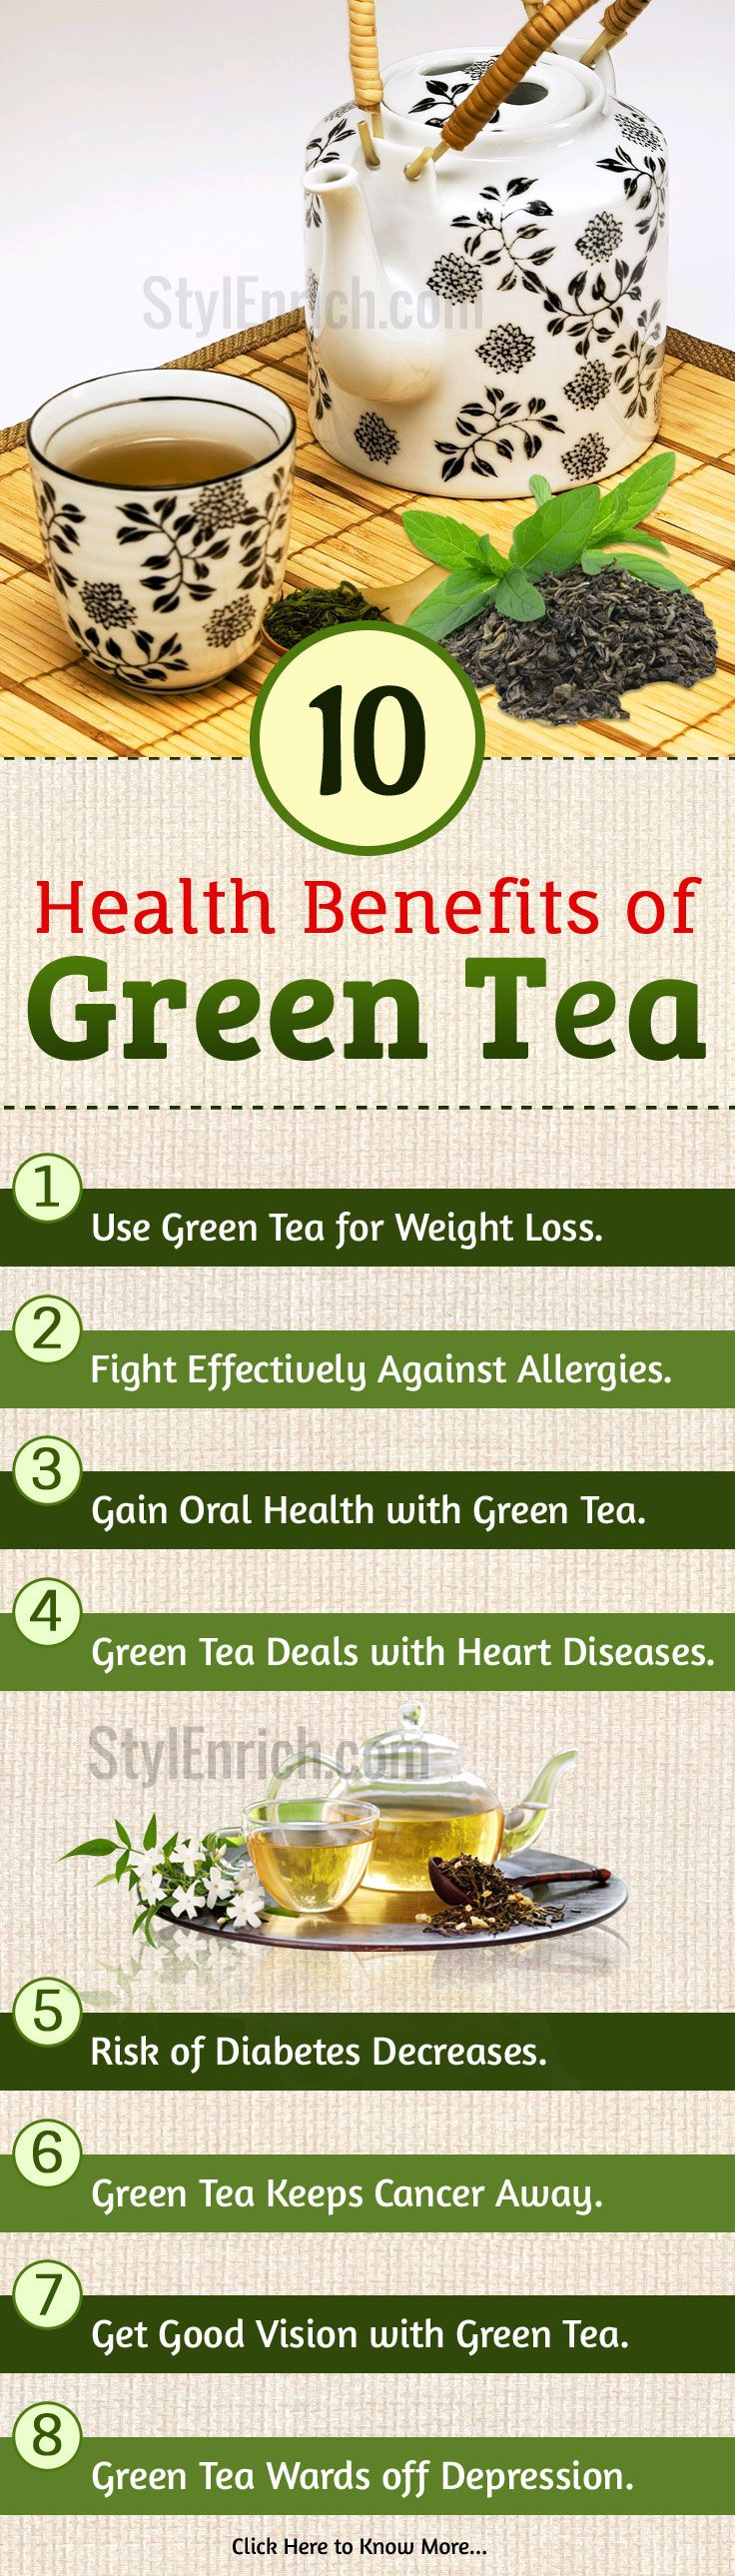 17 Health Benefits of Green Tea - Very Healthy Life